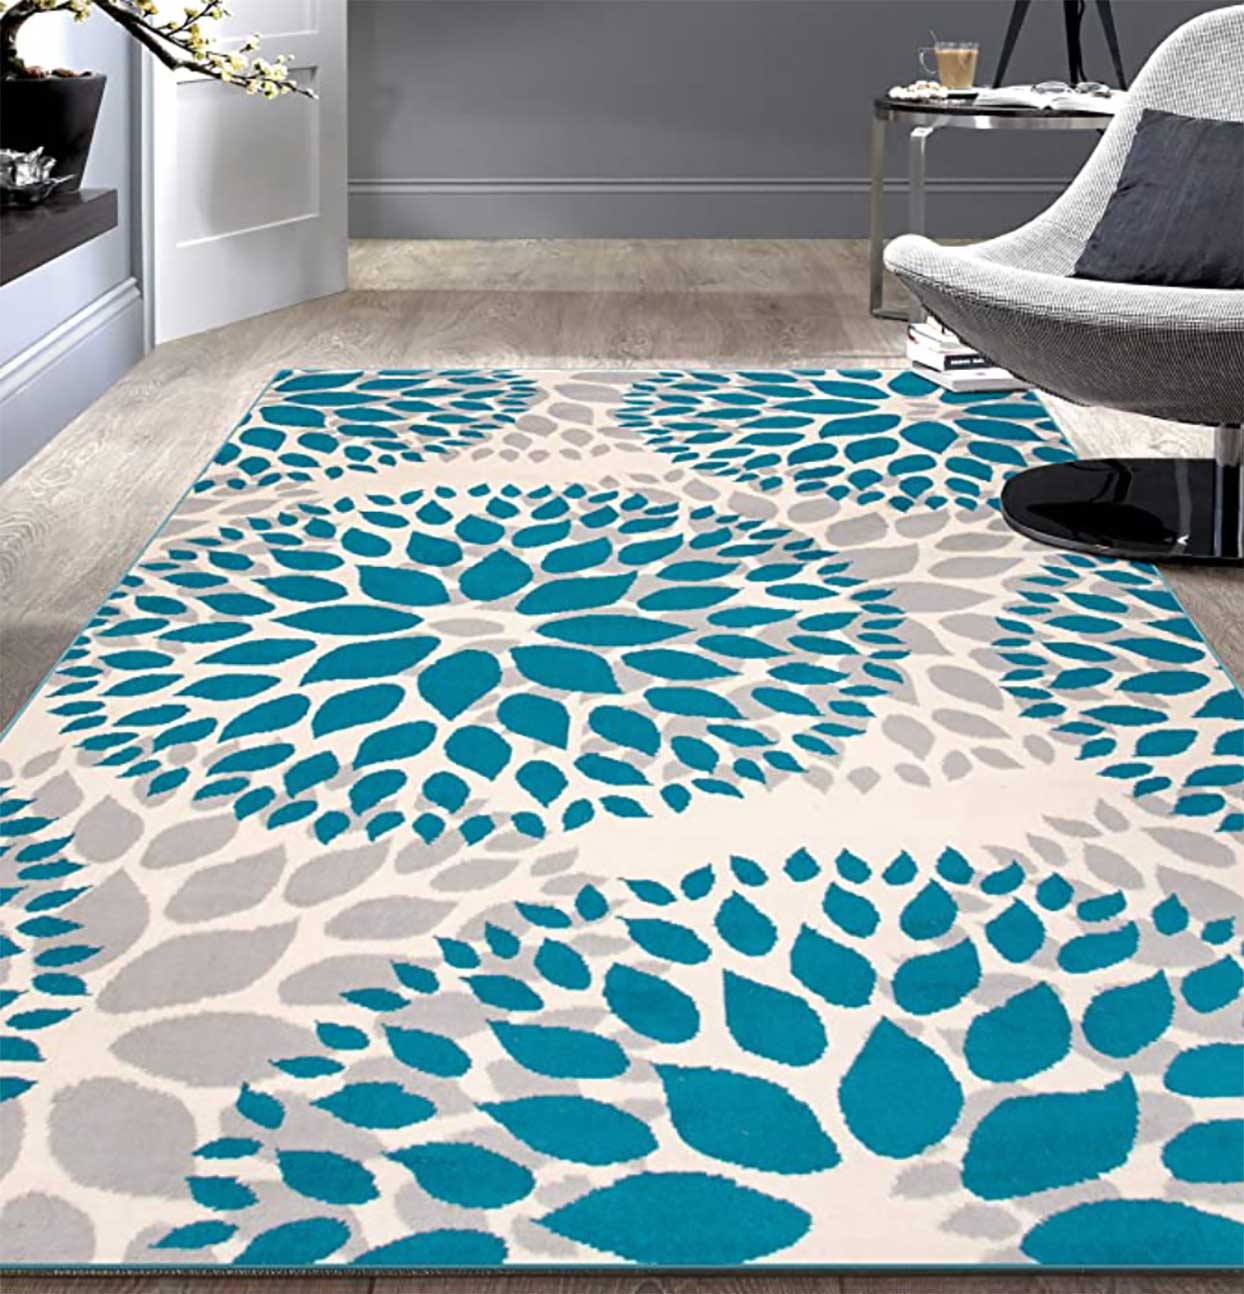 Modern Designer Area Rug with Floral Circles